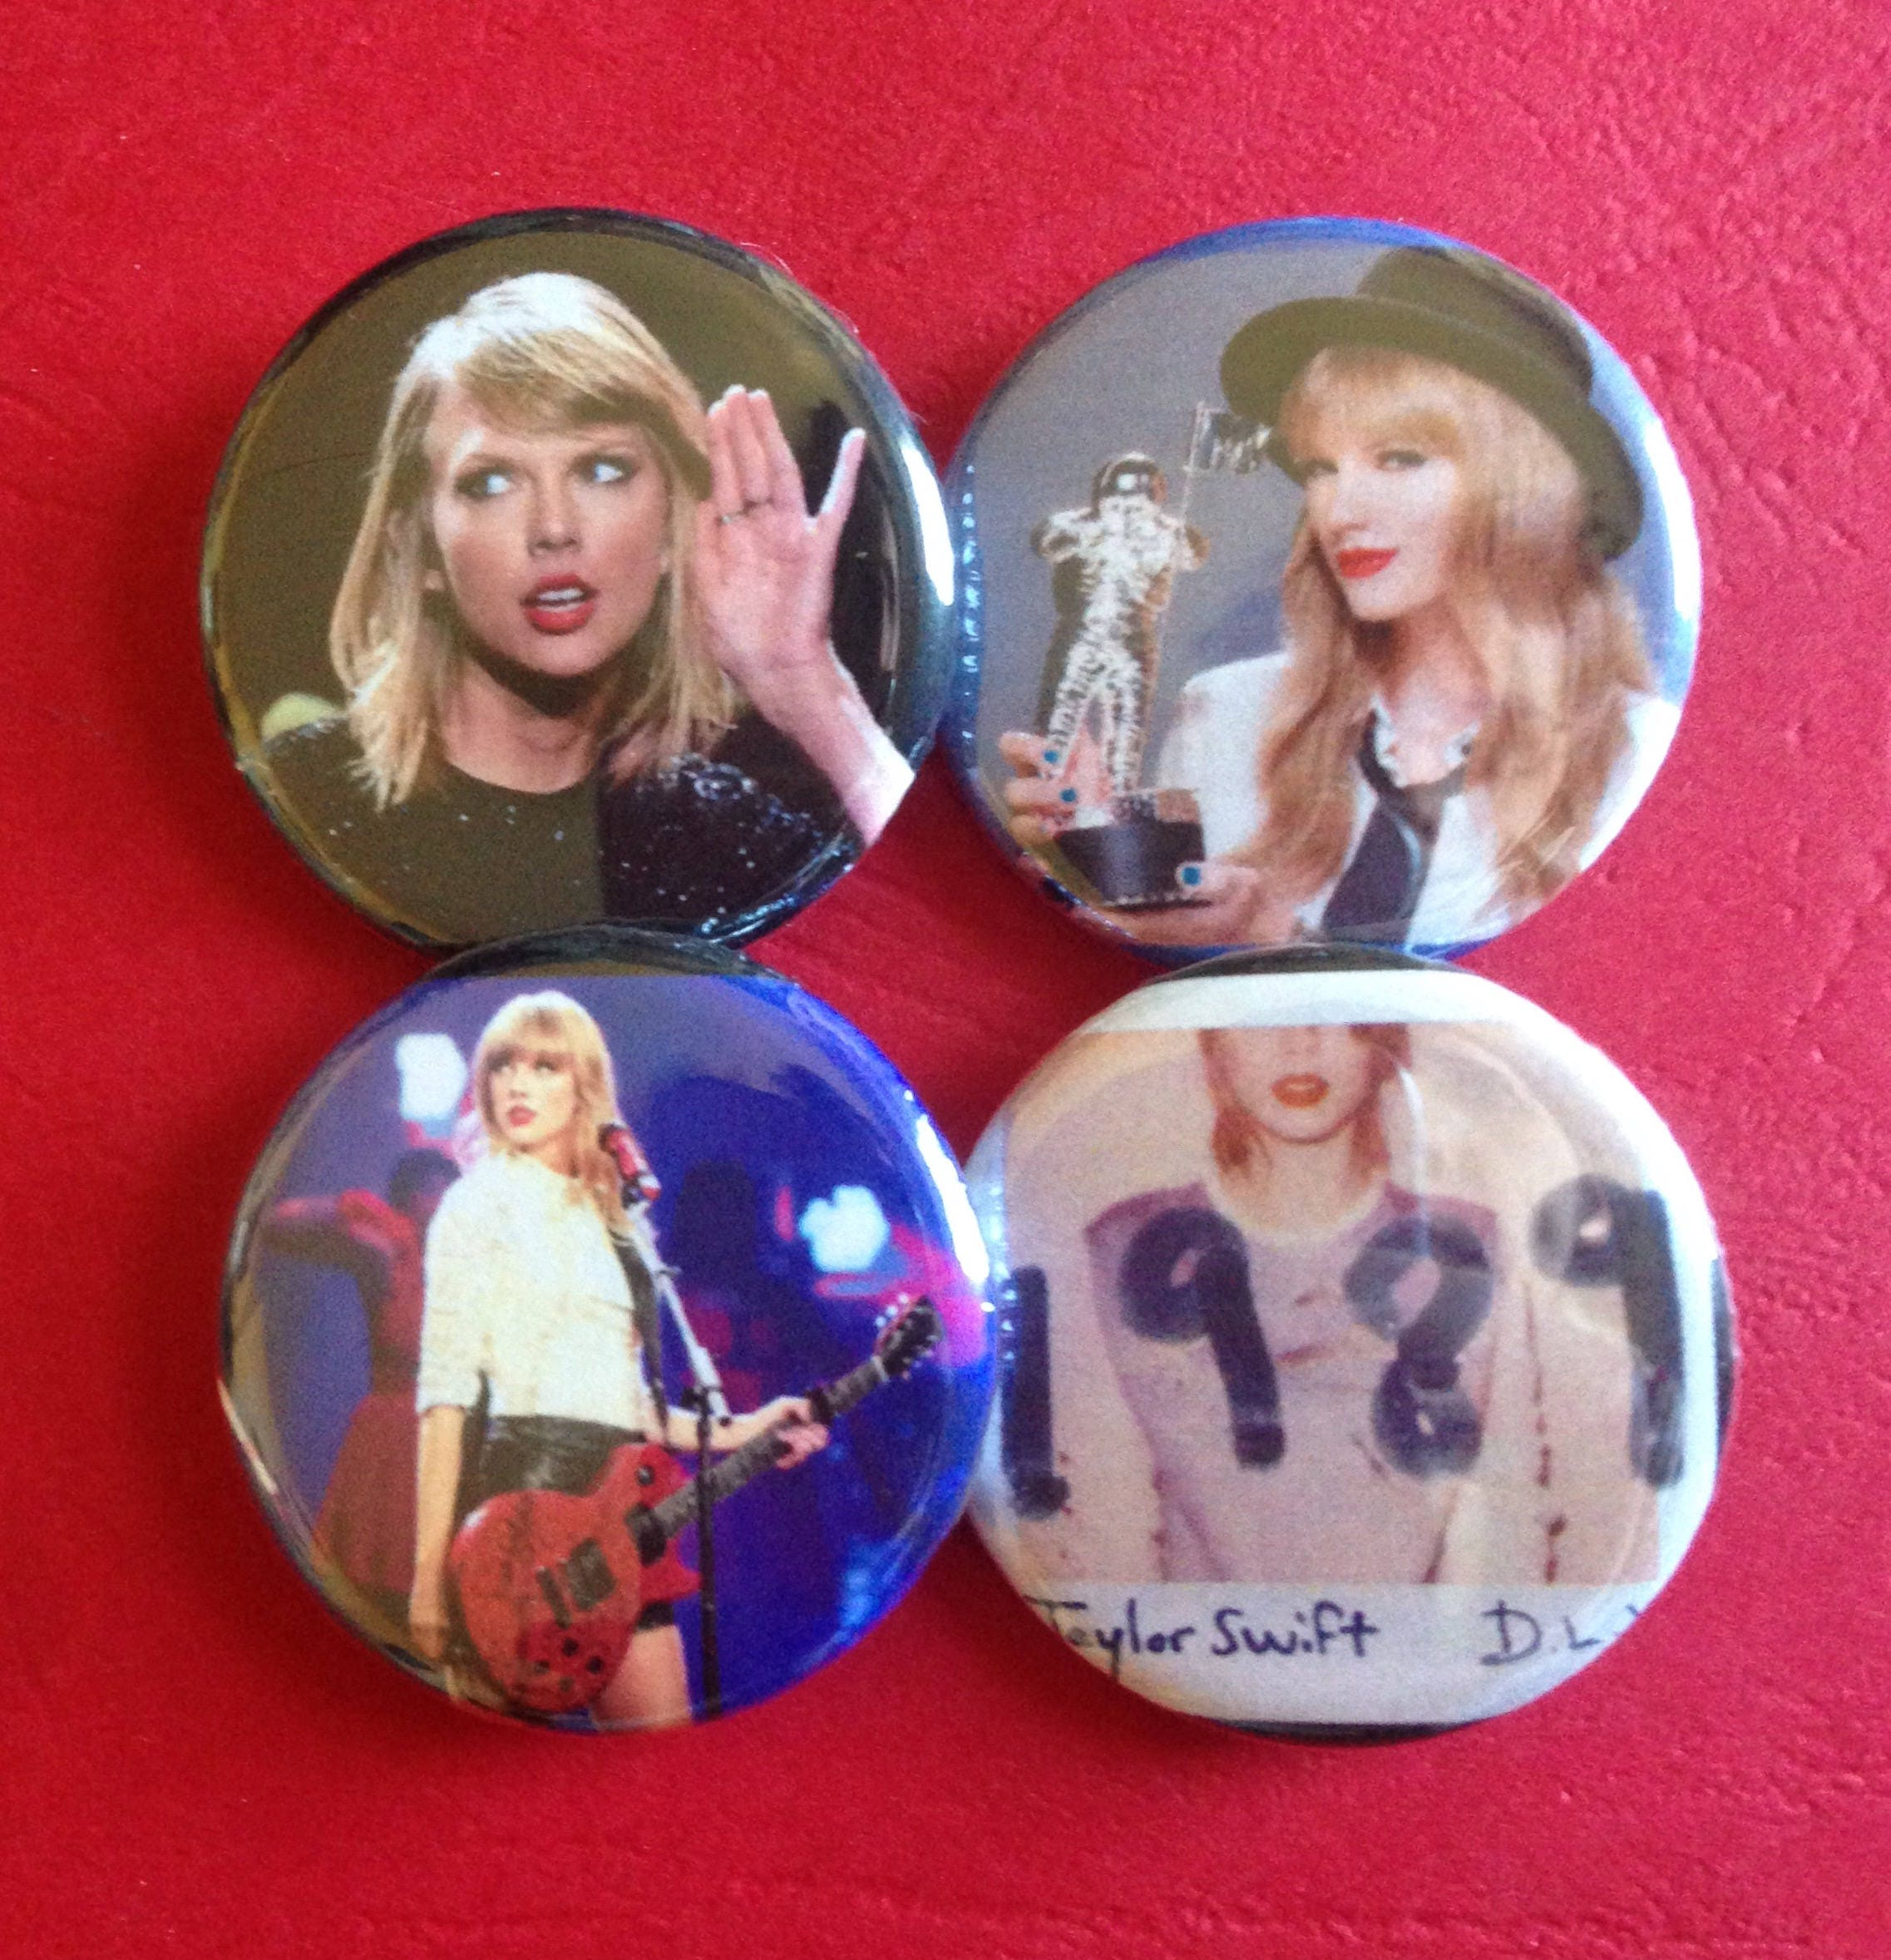 TAYLOR SWIFT set of 4 buttons 1 25